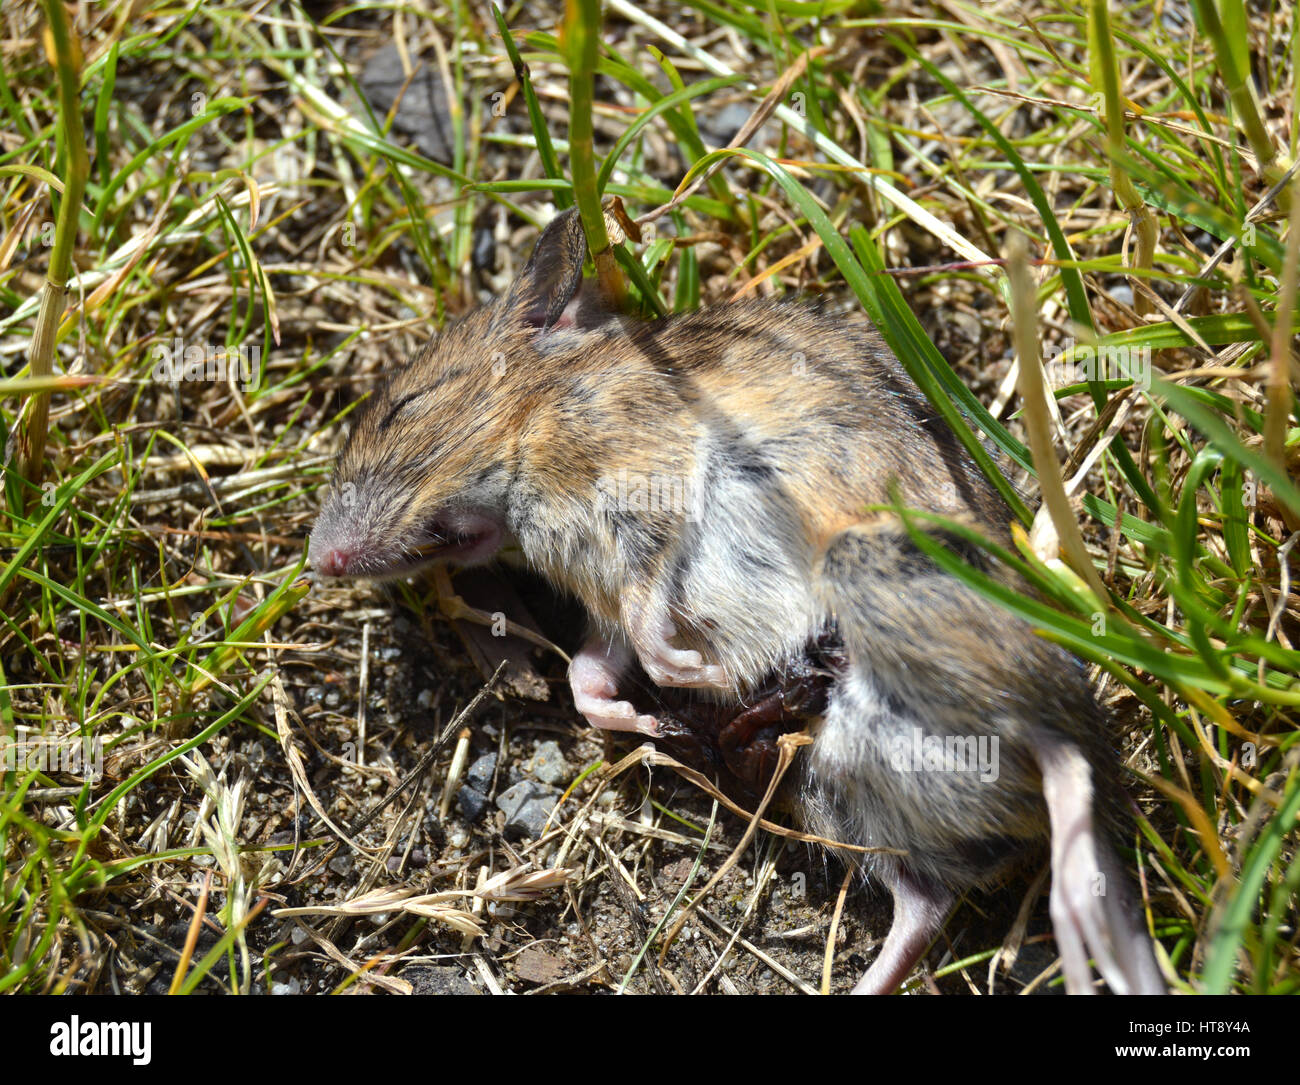 Dead brown rat laying in the grass - Stock Image